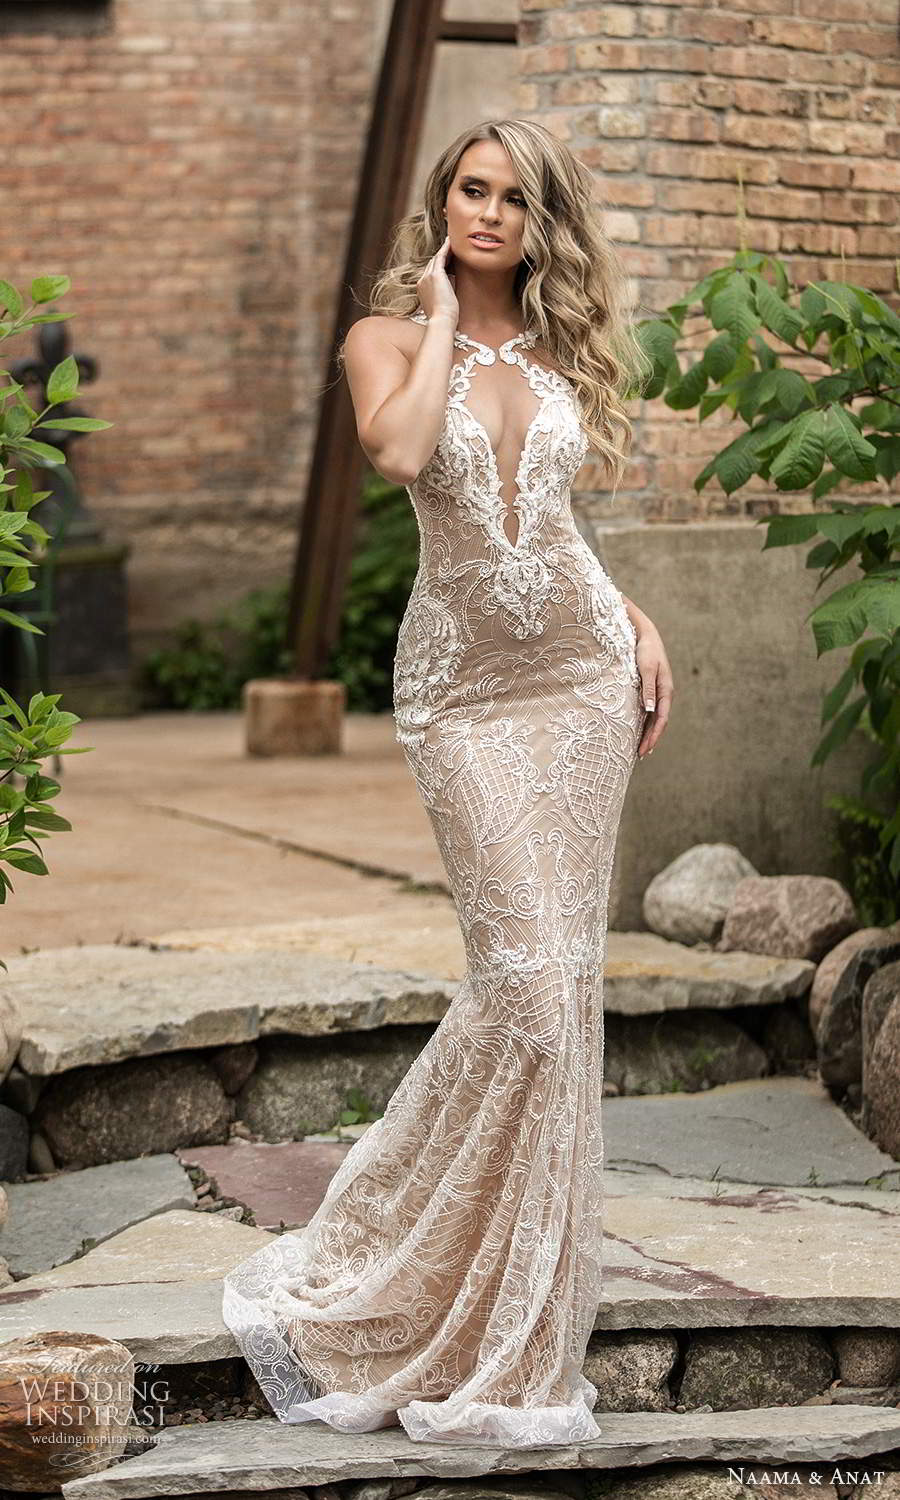 naama and anat 2021 bridal sleeveless halter neckline cutout bodice fully embellished lace sheath wedding dress chapel train (5) mv